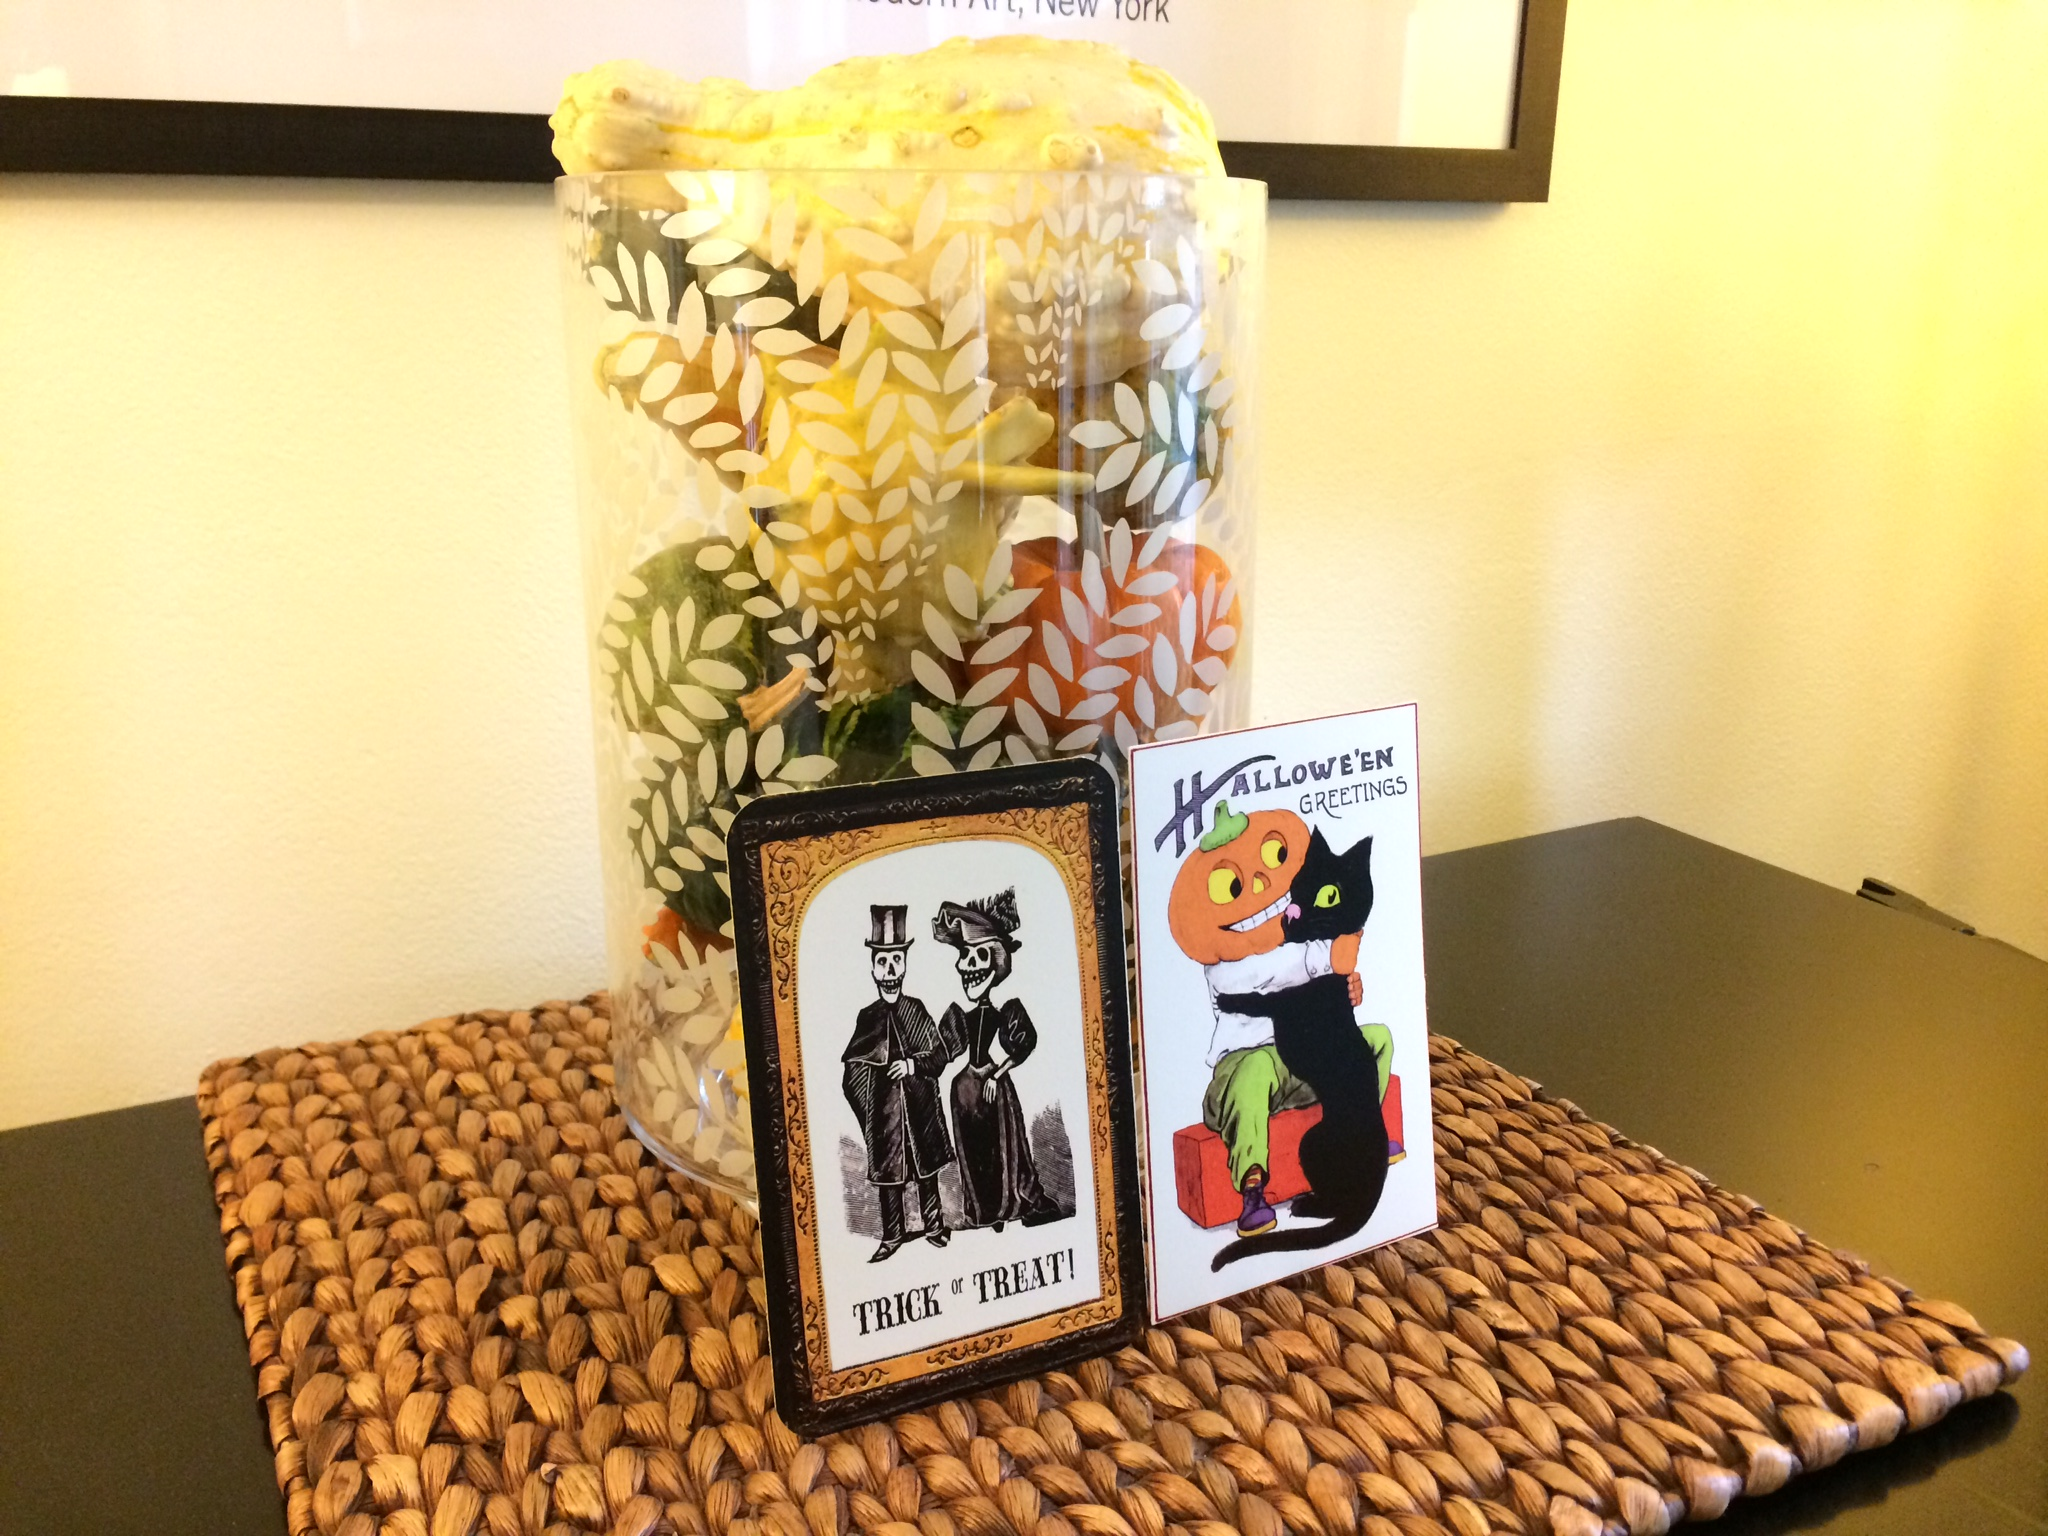 Fill any clear vessel with small harvest squash, pine cones or other fall colors. I love having pieces that can do many seasons and styles, everyone does double duty at Chez Betty